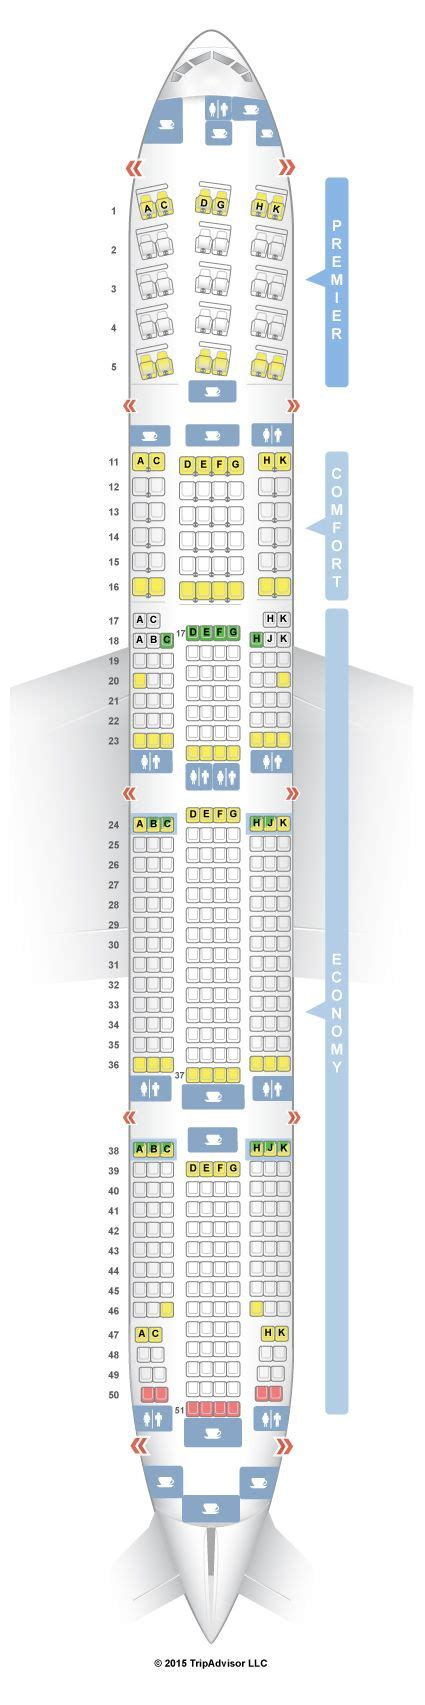 boeing 777 300er seat map 25 best ideas about boeing 777 300er seating on boeing 777 300 seating